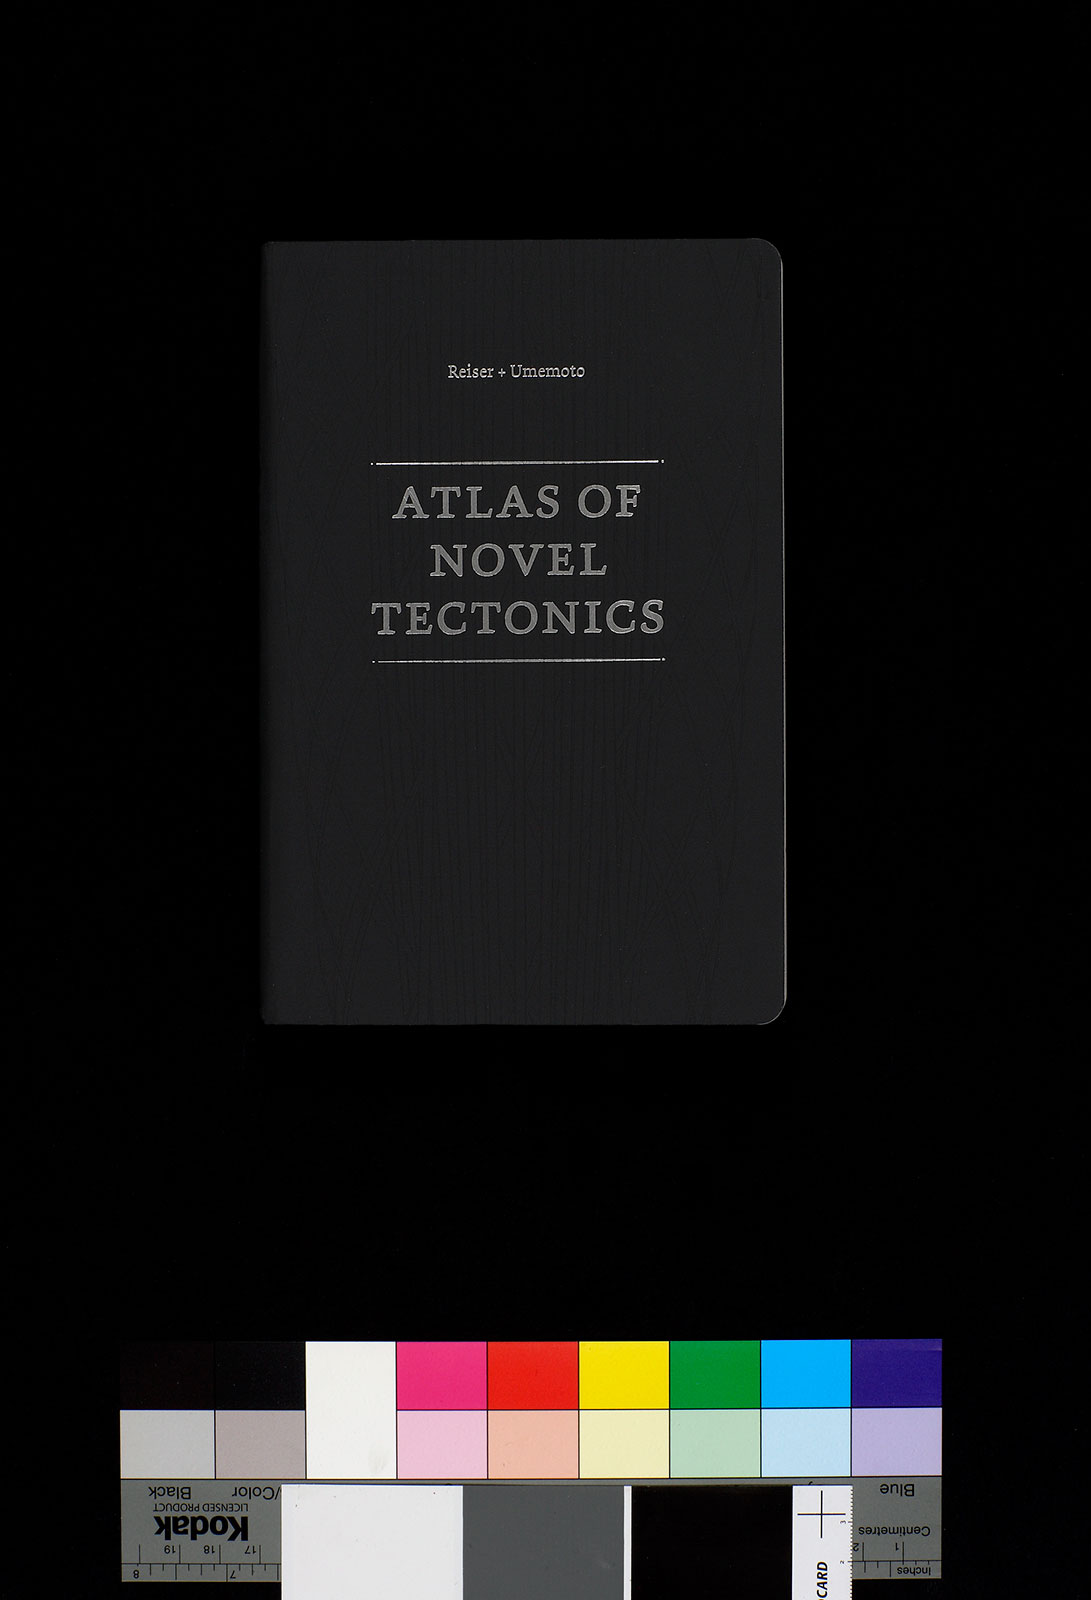 Atlas of Novel Tectonics. Fotografie: Raphael Hefti